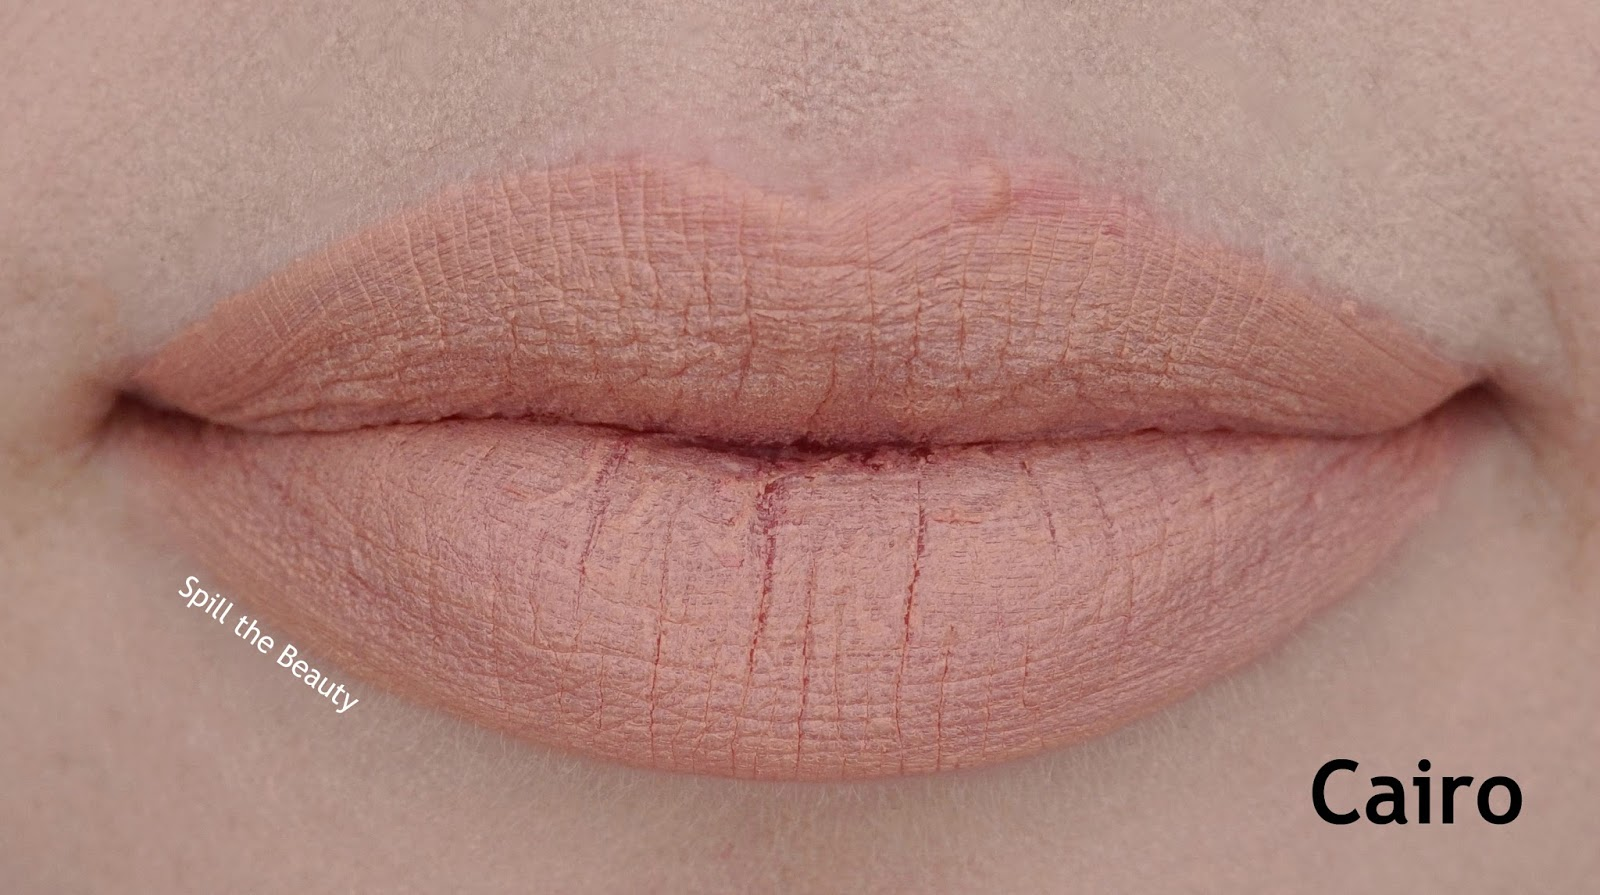 NYX Soft Matte Lip Cream 'Cairo' Review, and Swatches